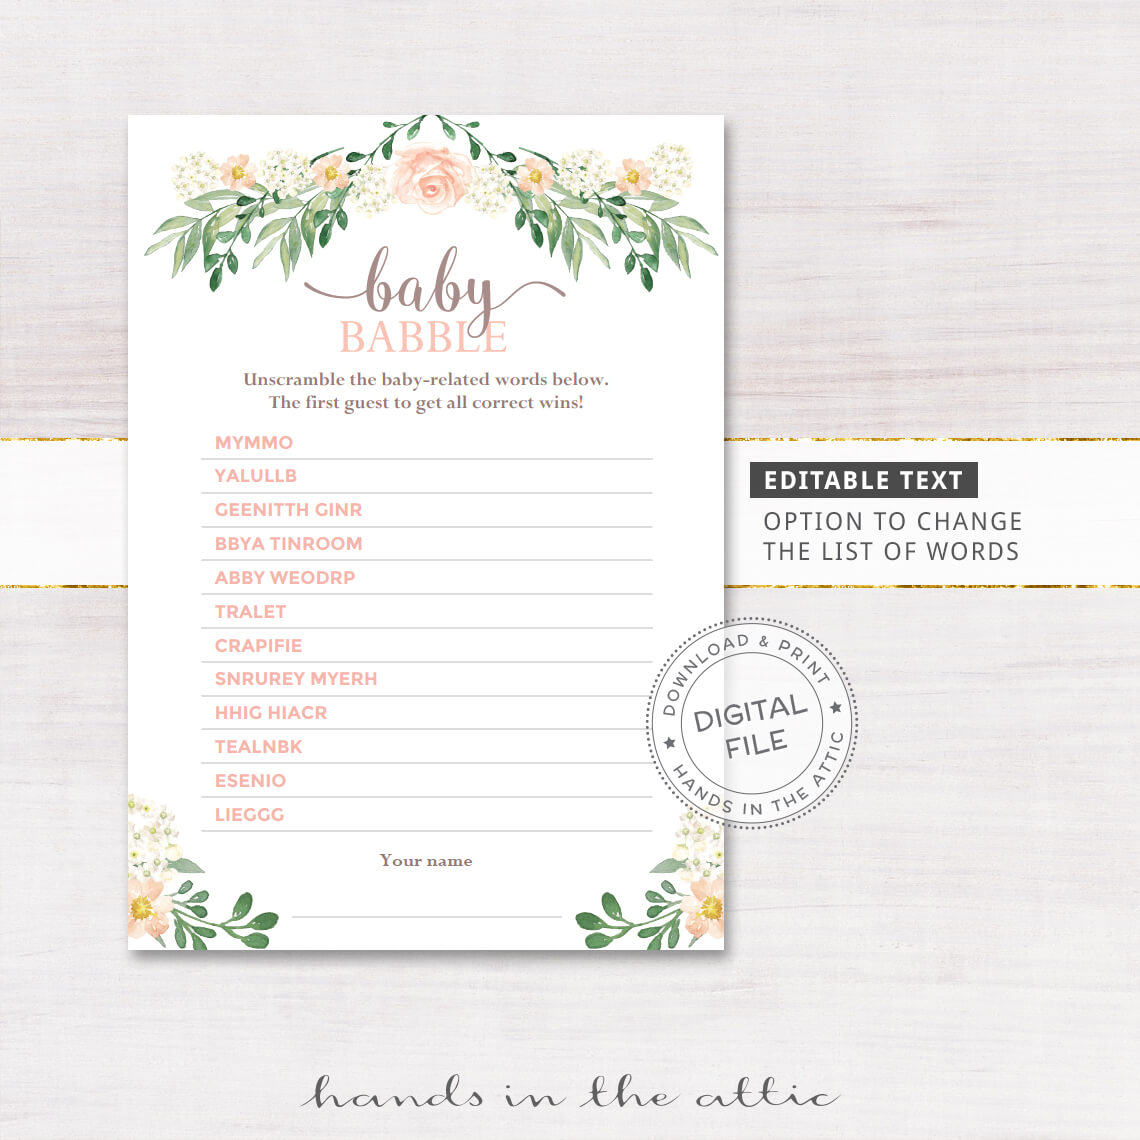 Baby Babble Word Scramble Game Printable Stationery Weddings